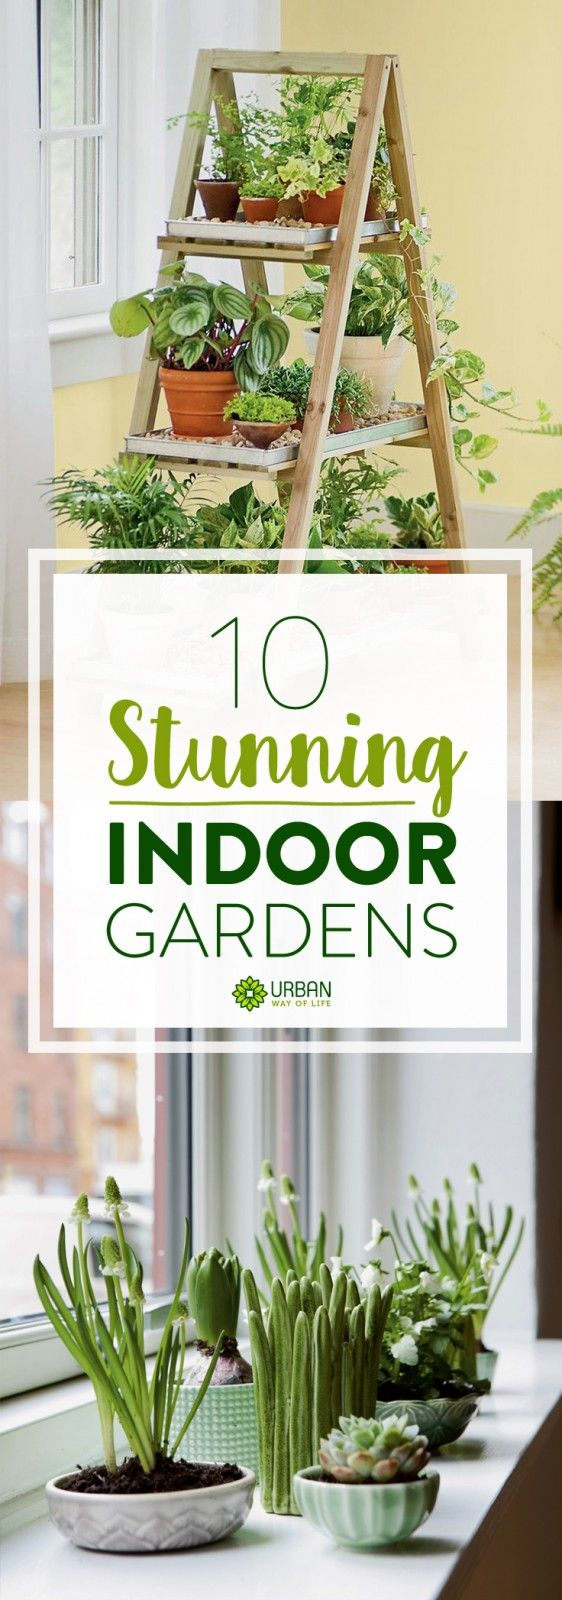 Indoor Gardening Ideas | DIY Inspiration for your apartment. By Urban Way of Life @ http://urbanwayoflife.com/10-stunning-indoor-gardens/